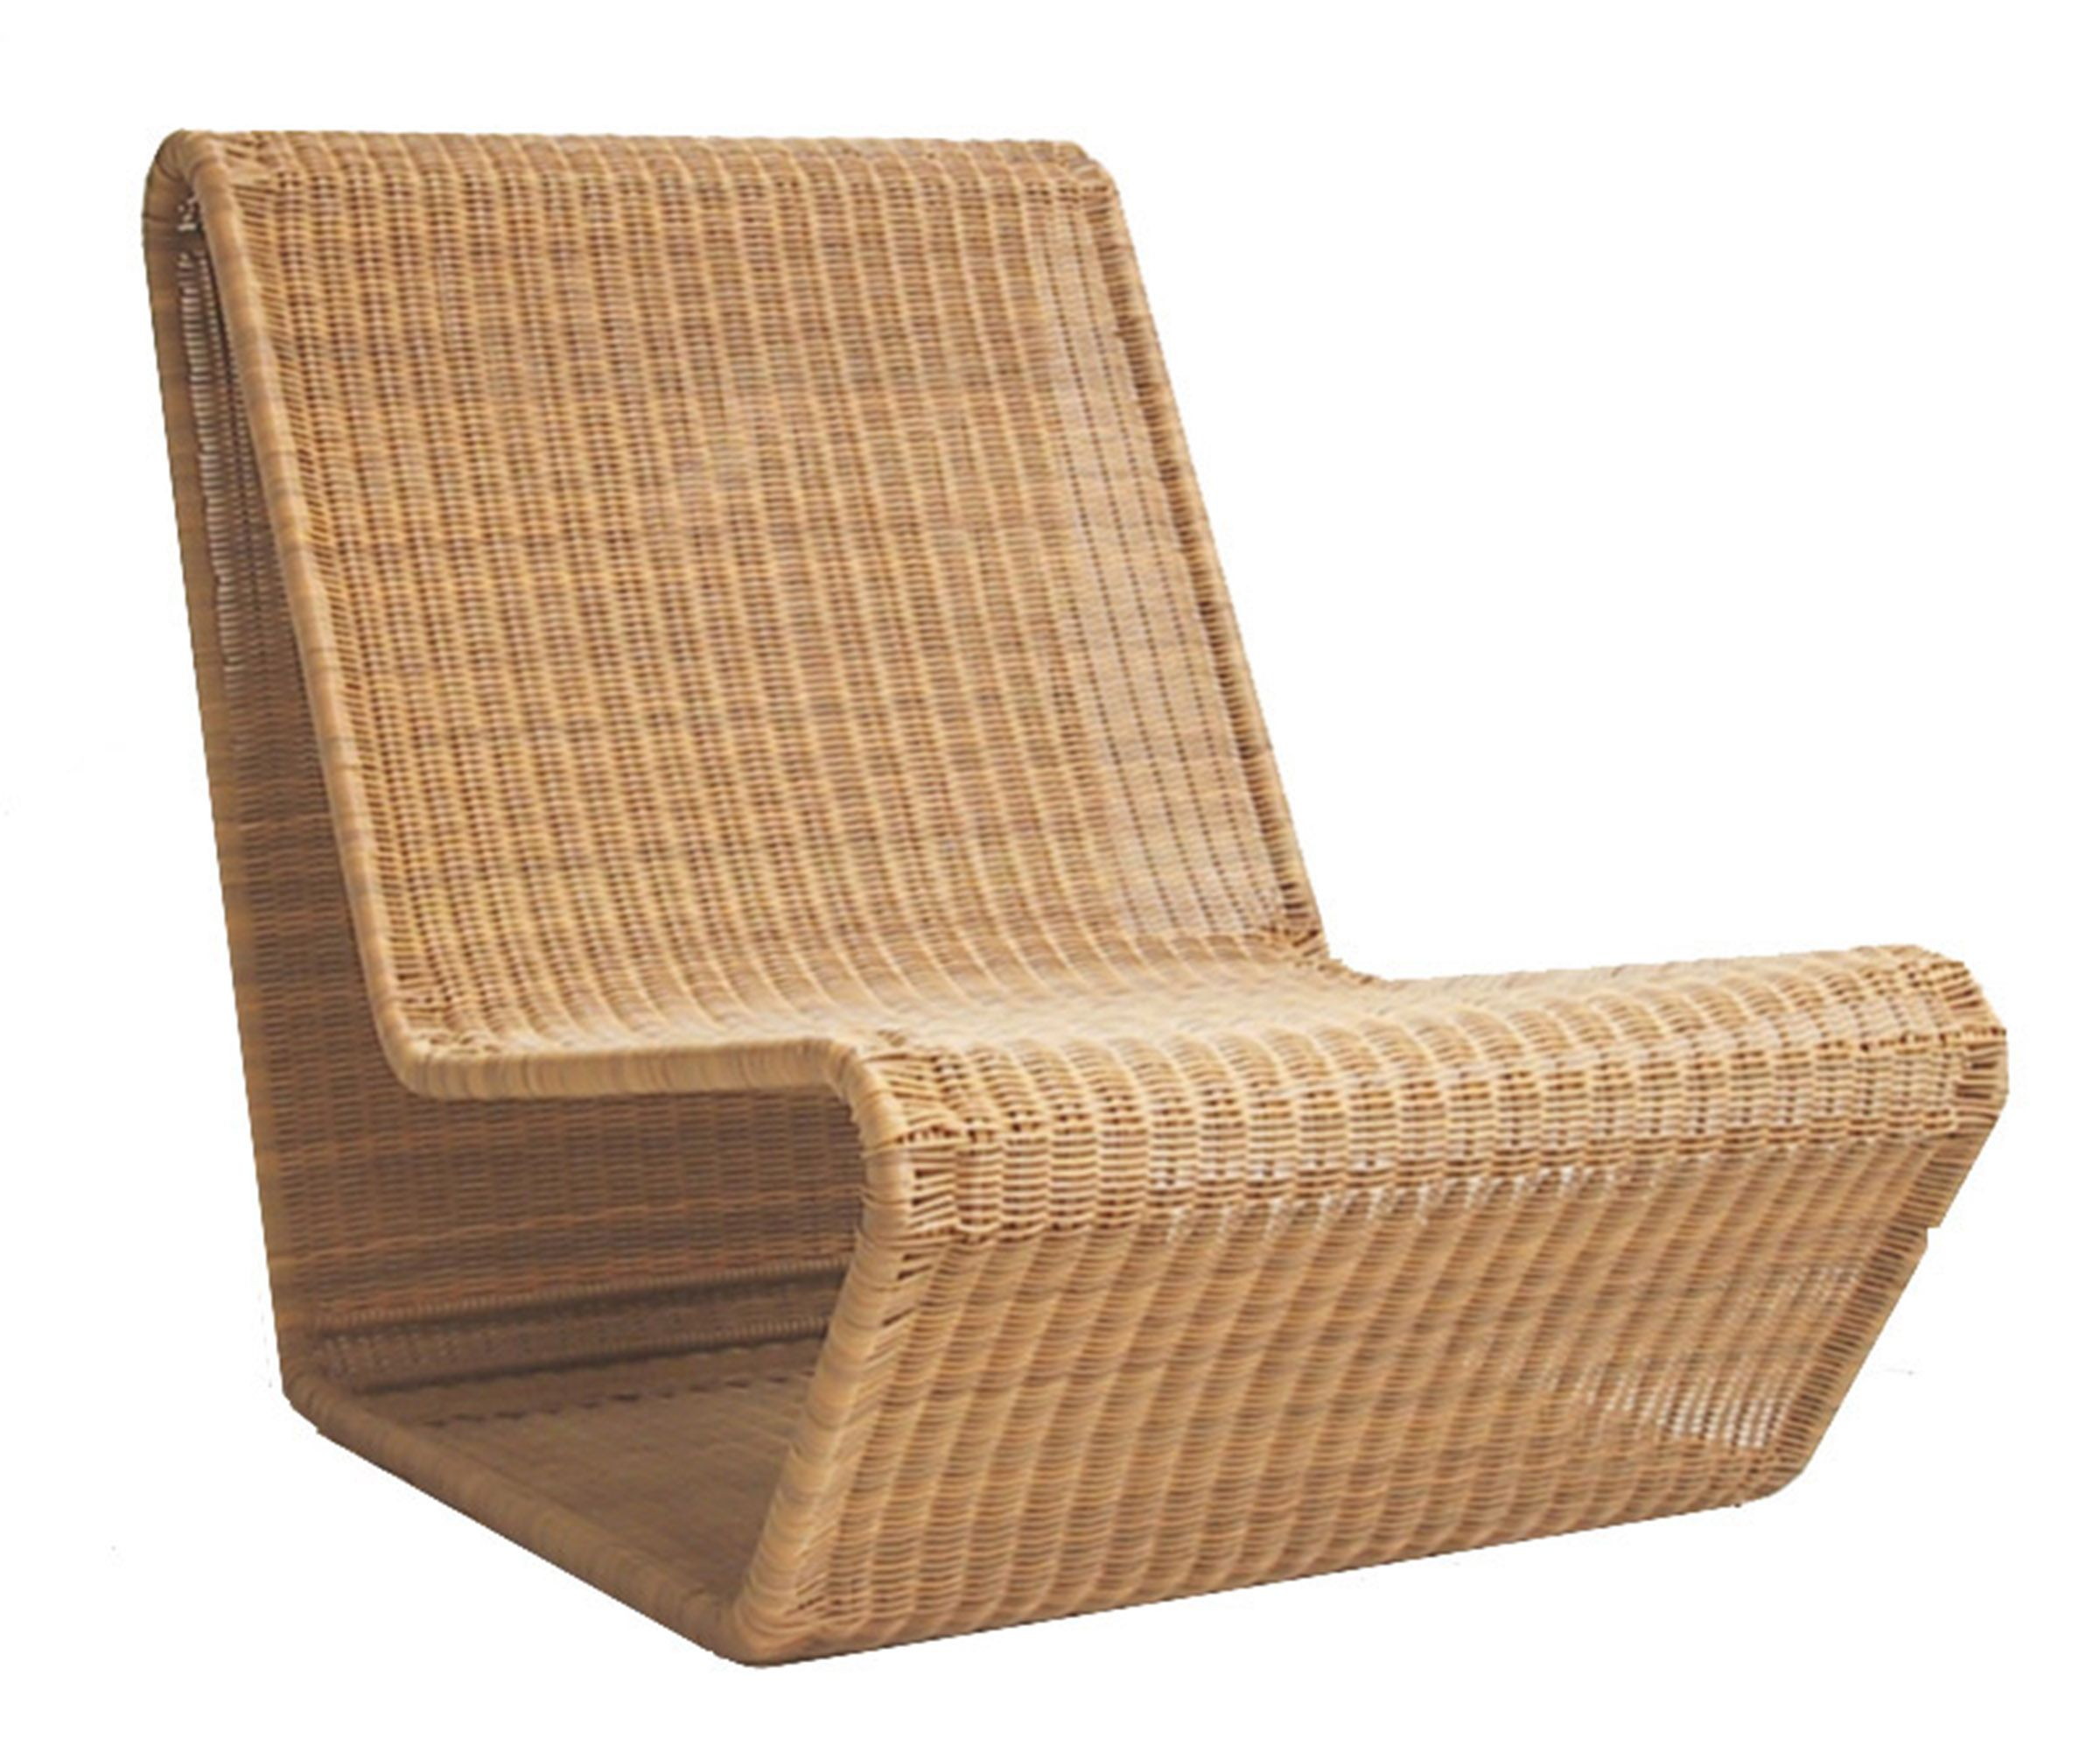 6733 Wave Outdoor Lounge Chair designed by Danny Ho Fung ca 1966